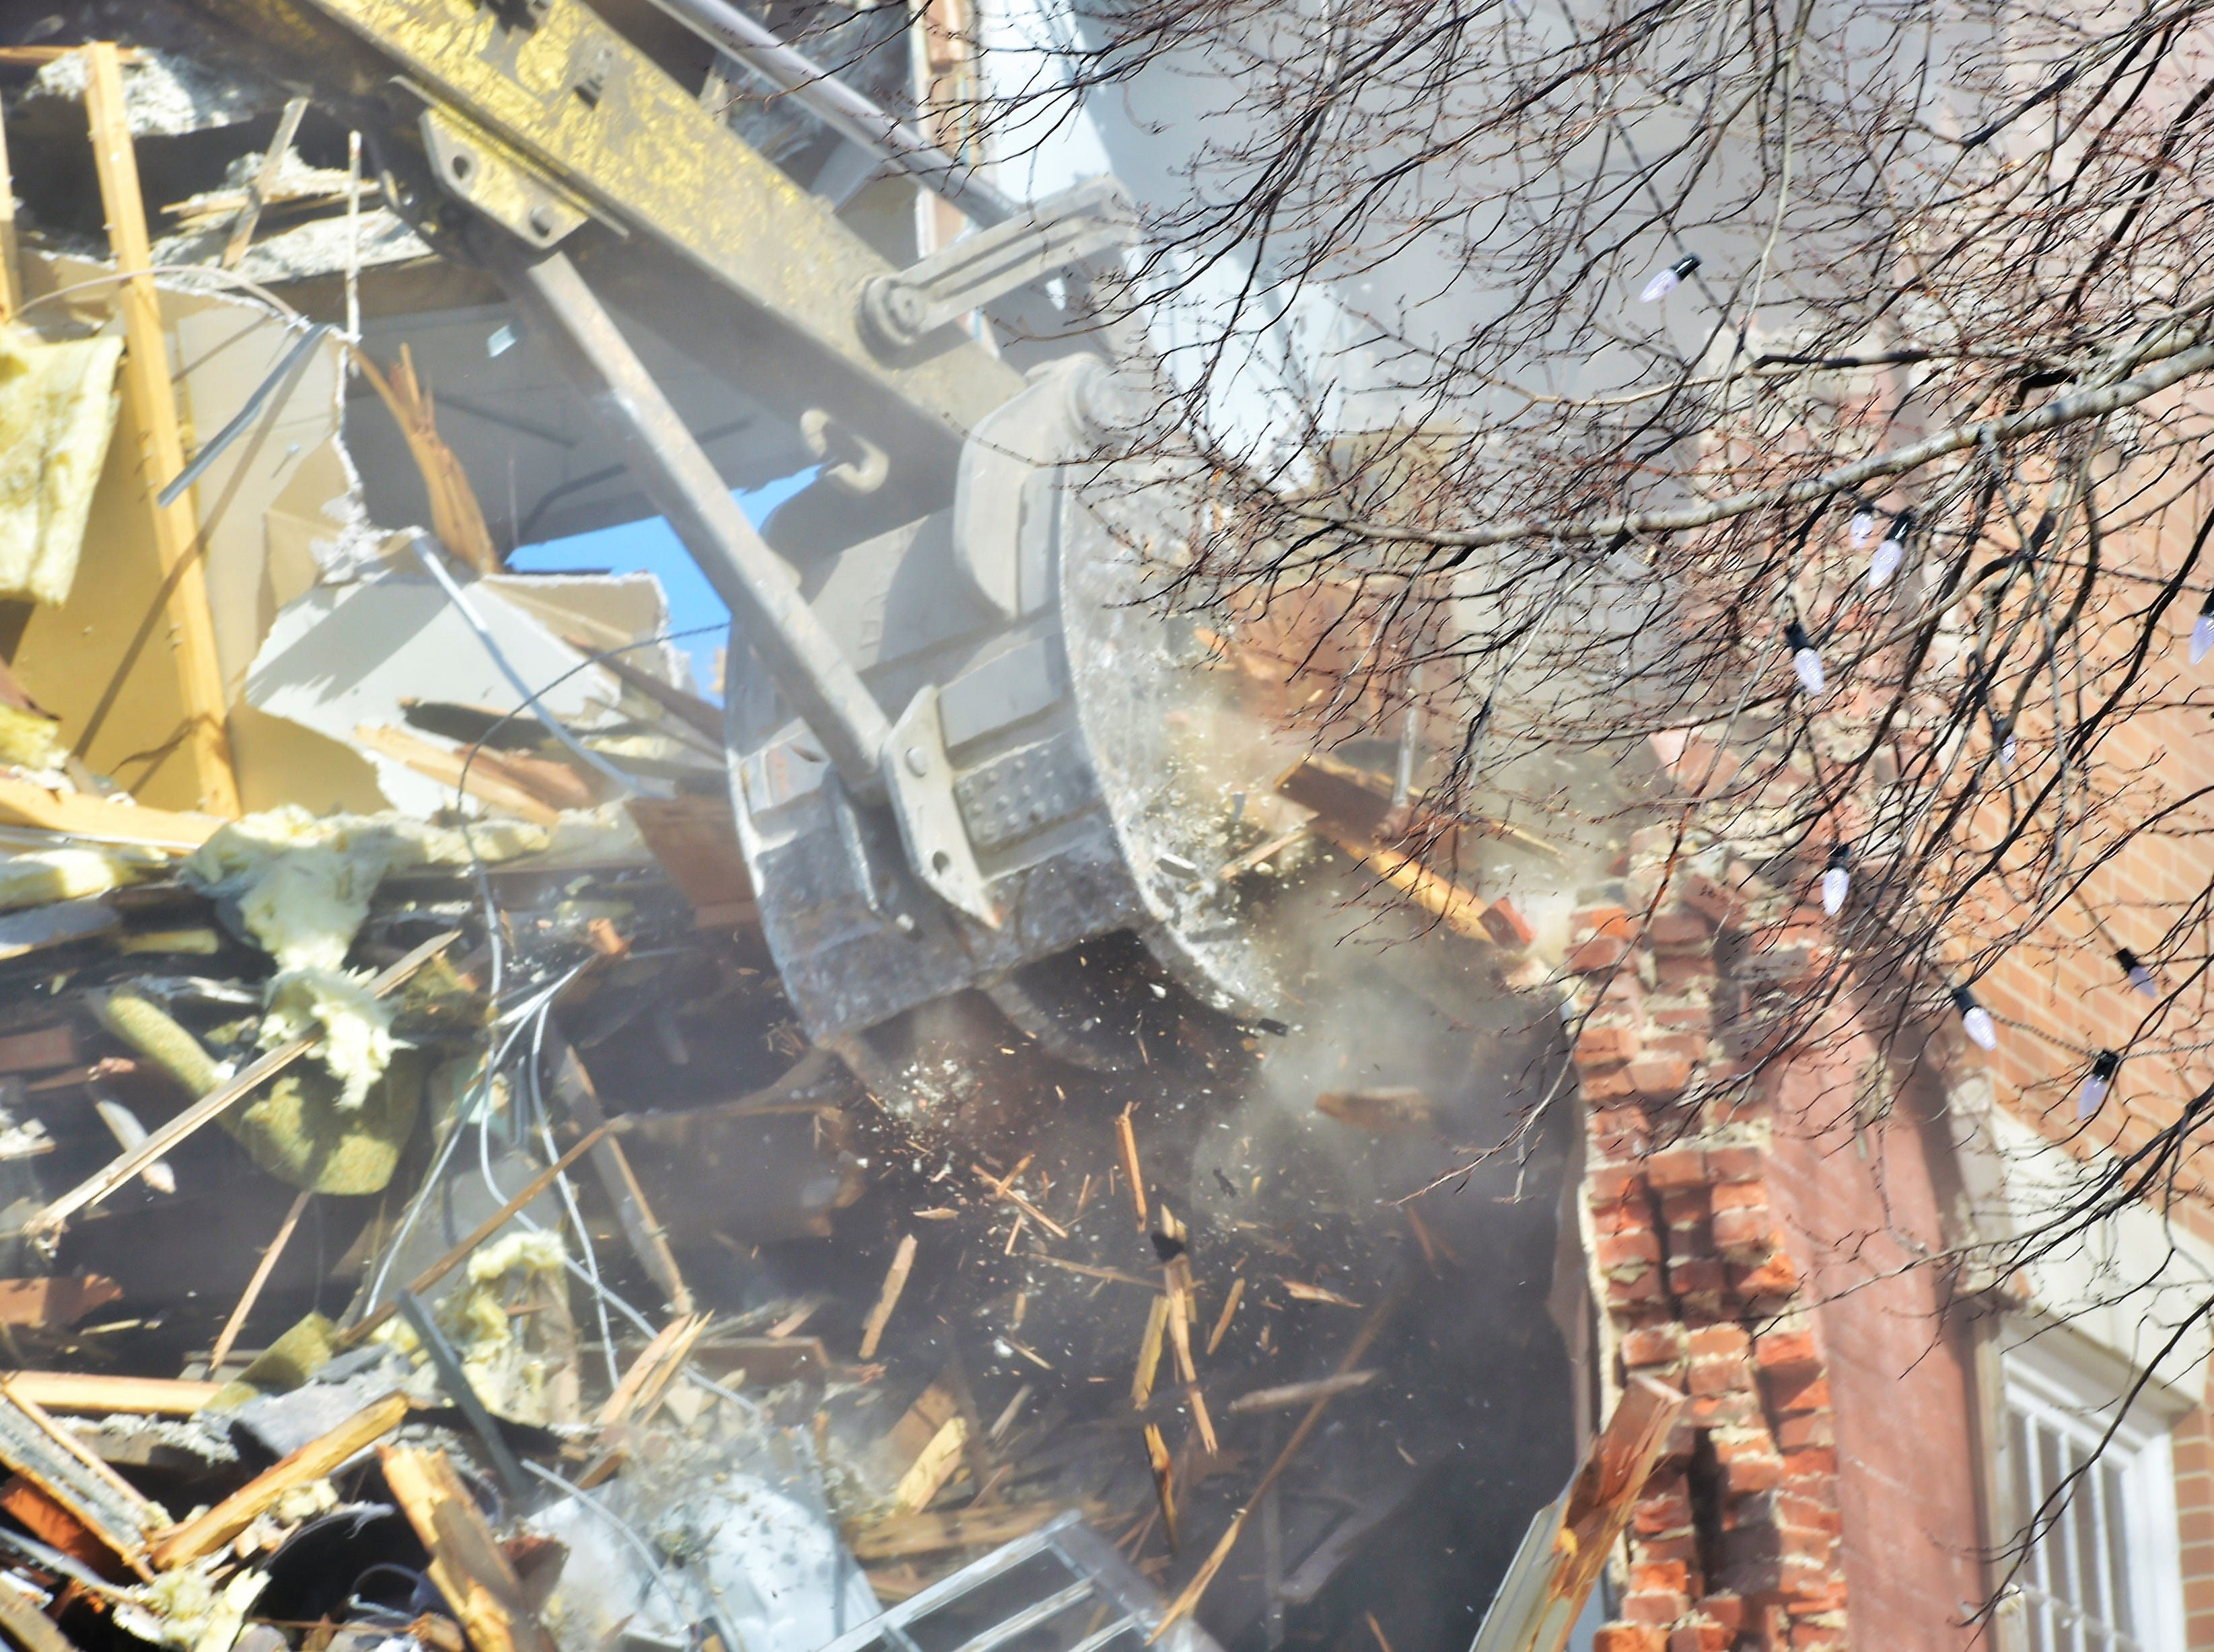 Demolition of the Courtside Professional Building in Chambersburg was underway Feb. 28. The three-story section was being demolished first. The demolition will make room for a new judicial center.